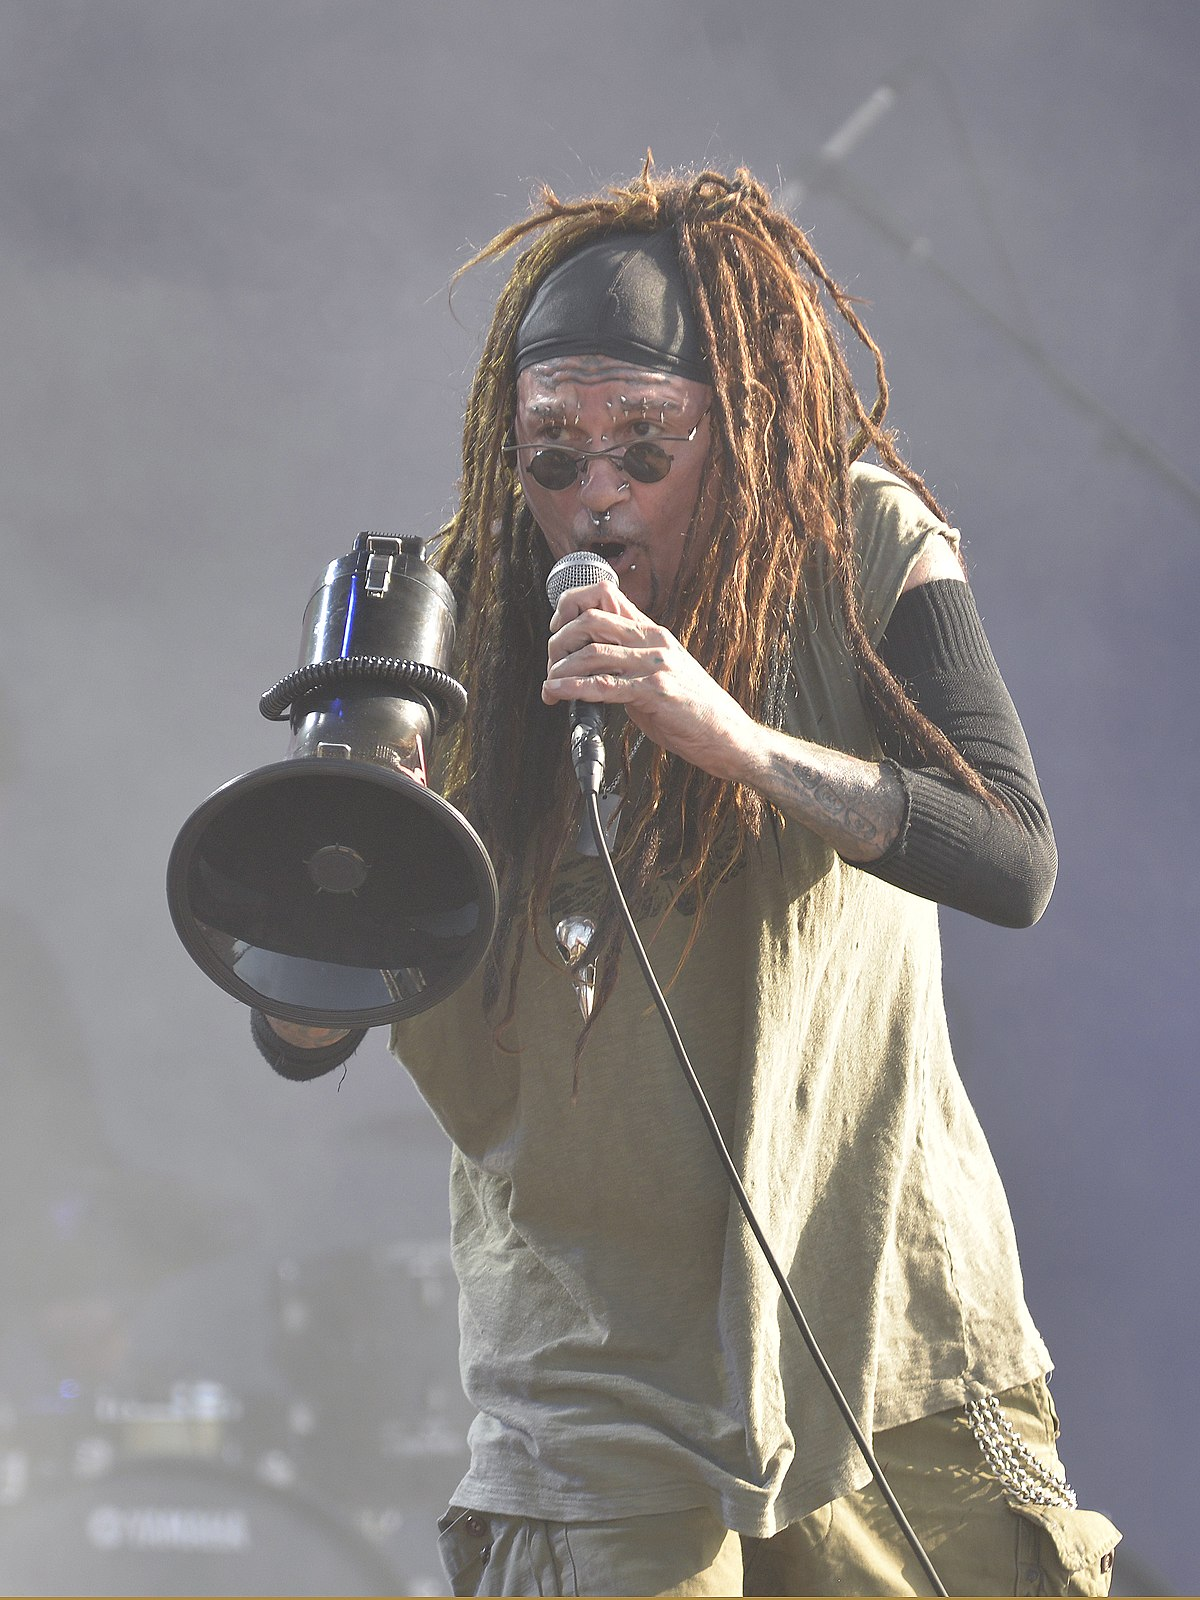 Al Jourgensen Wikipedia